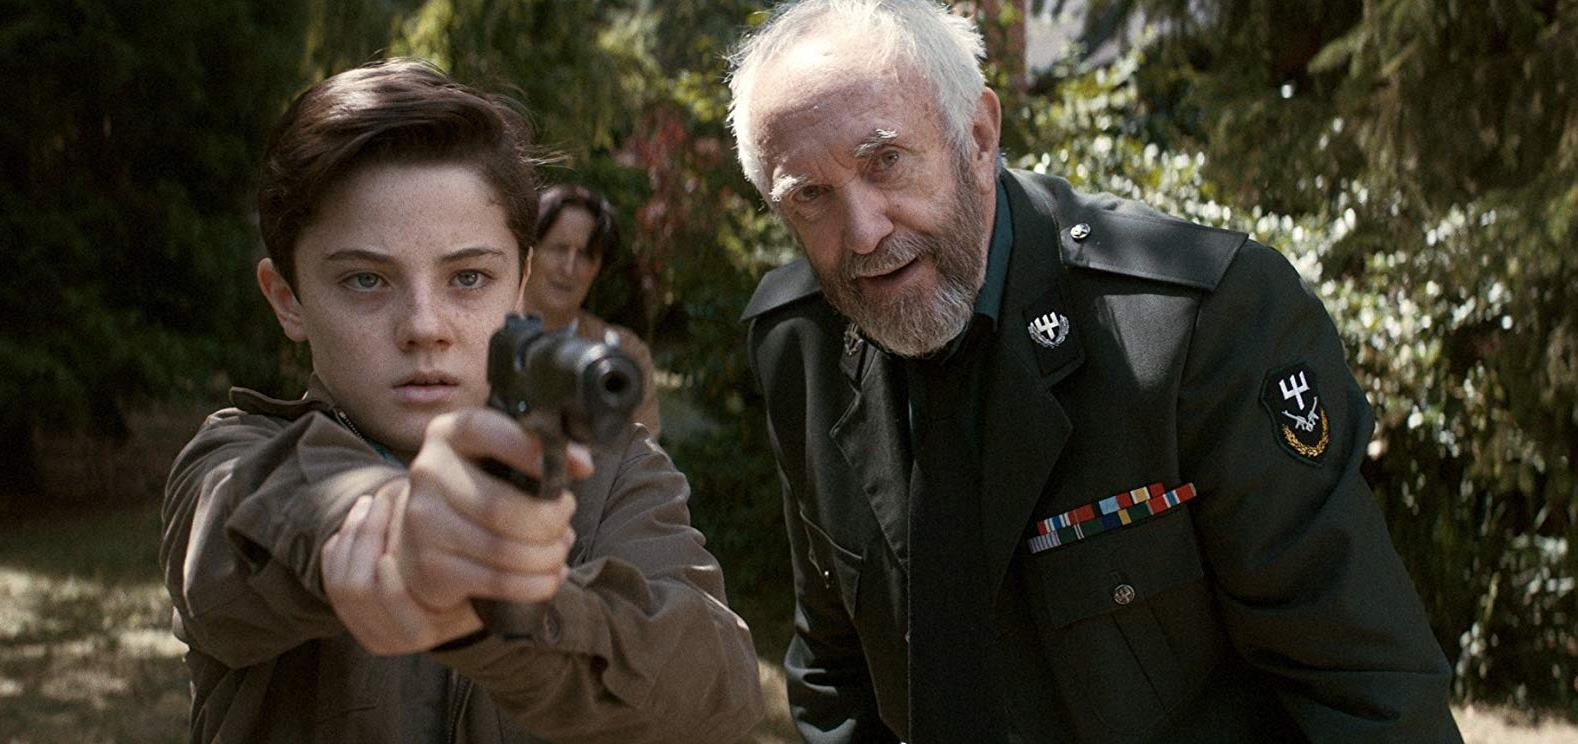 Young Djarta (Lorenzo Allchurch) is taught how to use a gun by his grandfather Jonathan Pryce. With grandmother Fiona Shaw lurking in the background in The White King (2016)